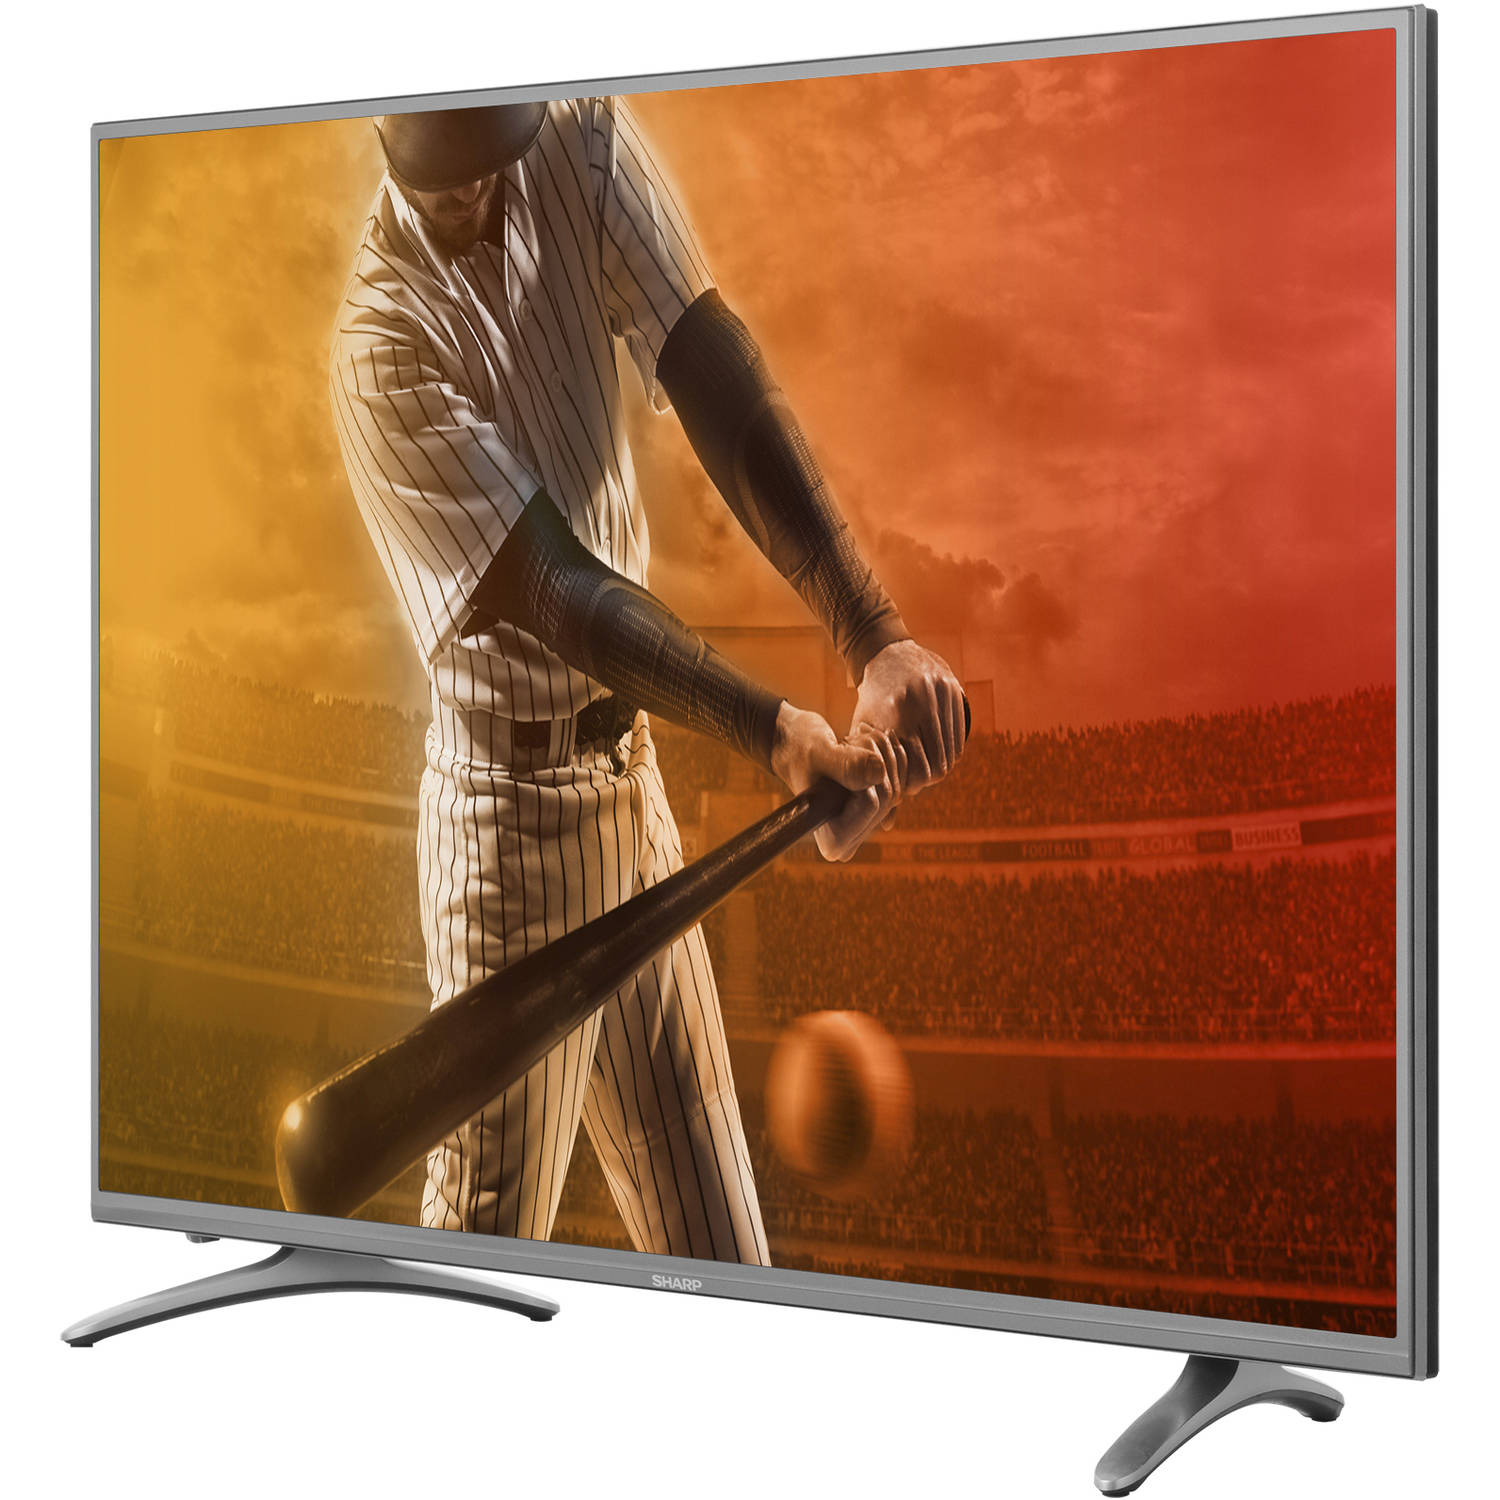 "Sharp 50"" Class FHD (1080p) Smart LED TV (LC-50N5000U) by Sharp"